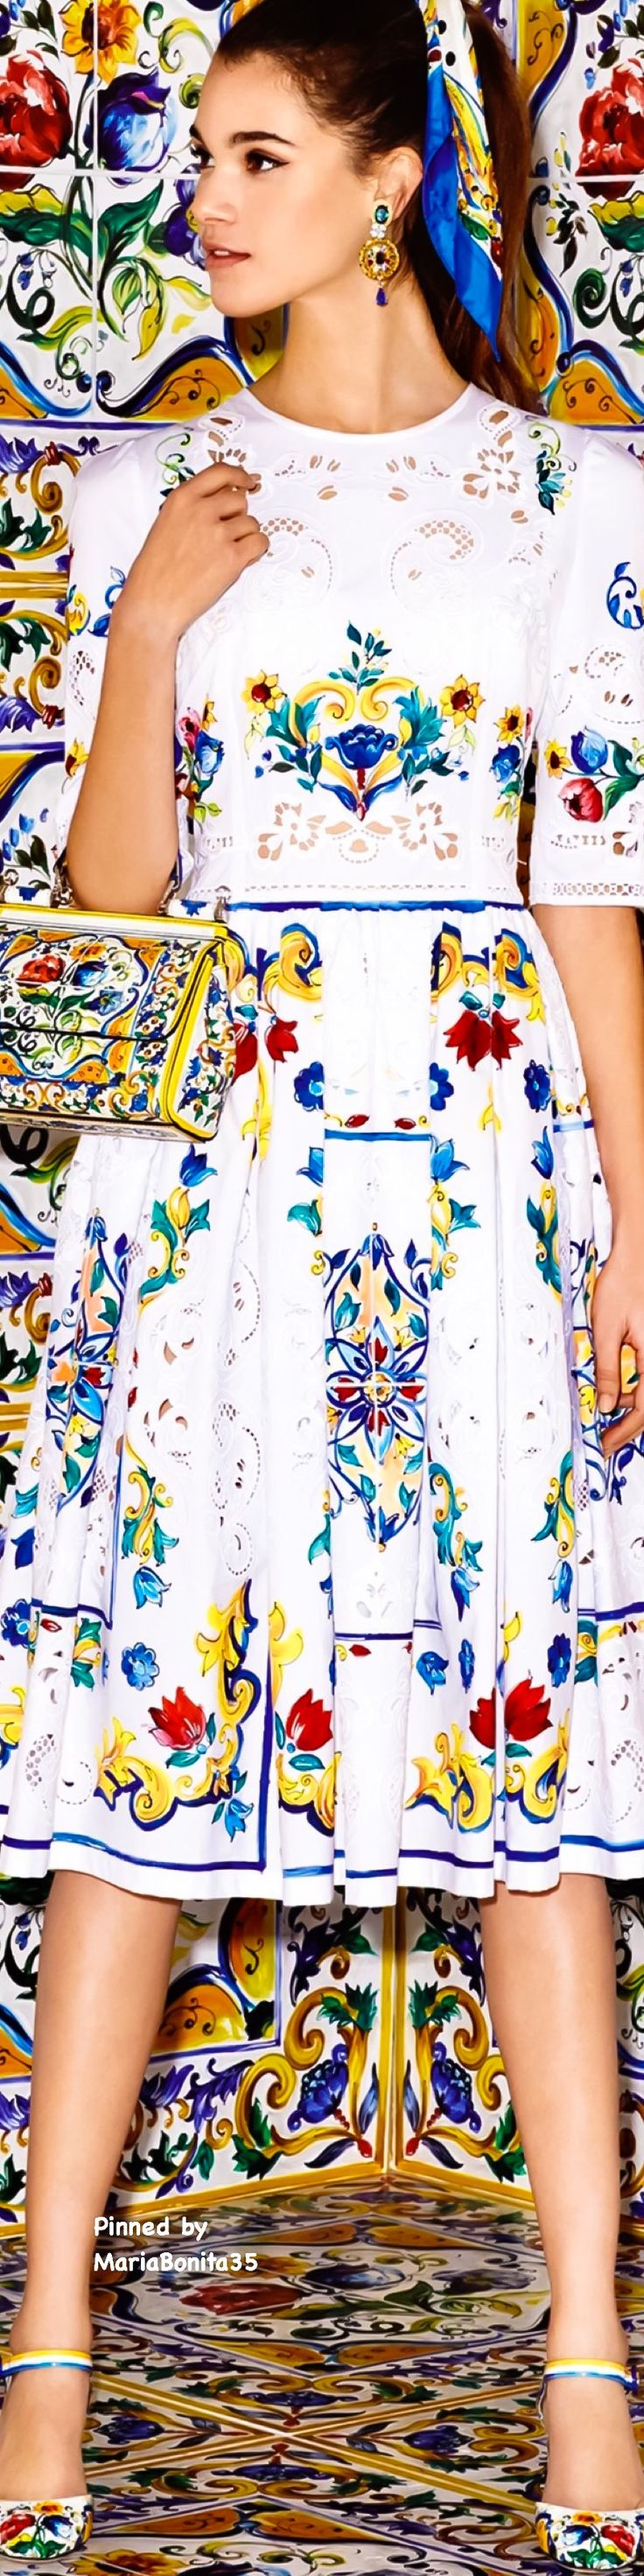 Dolce and Gabbana Fall-Winter 2016/17 Collection Majolica Highlights